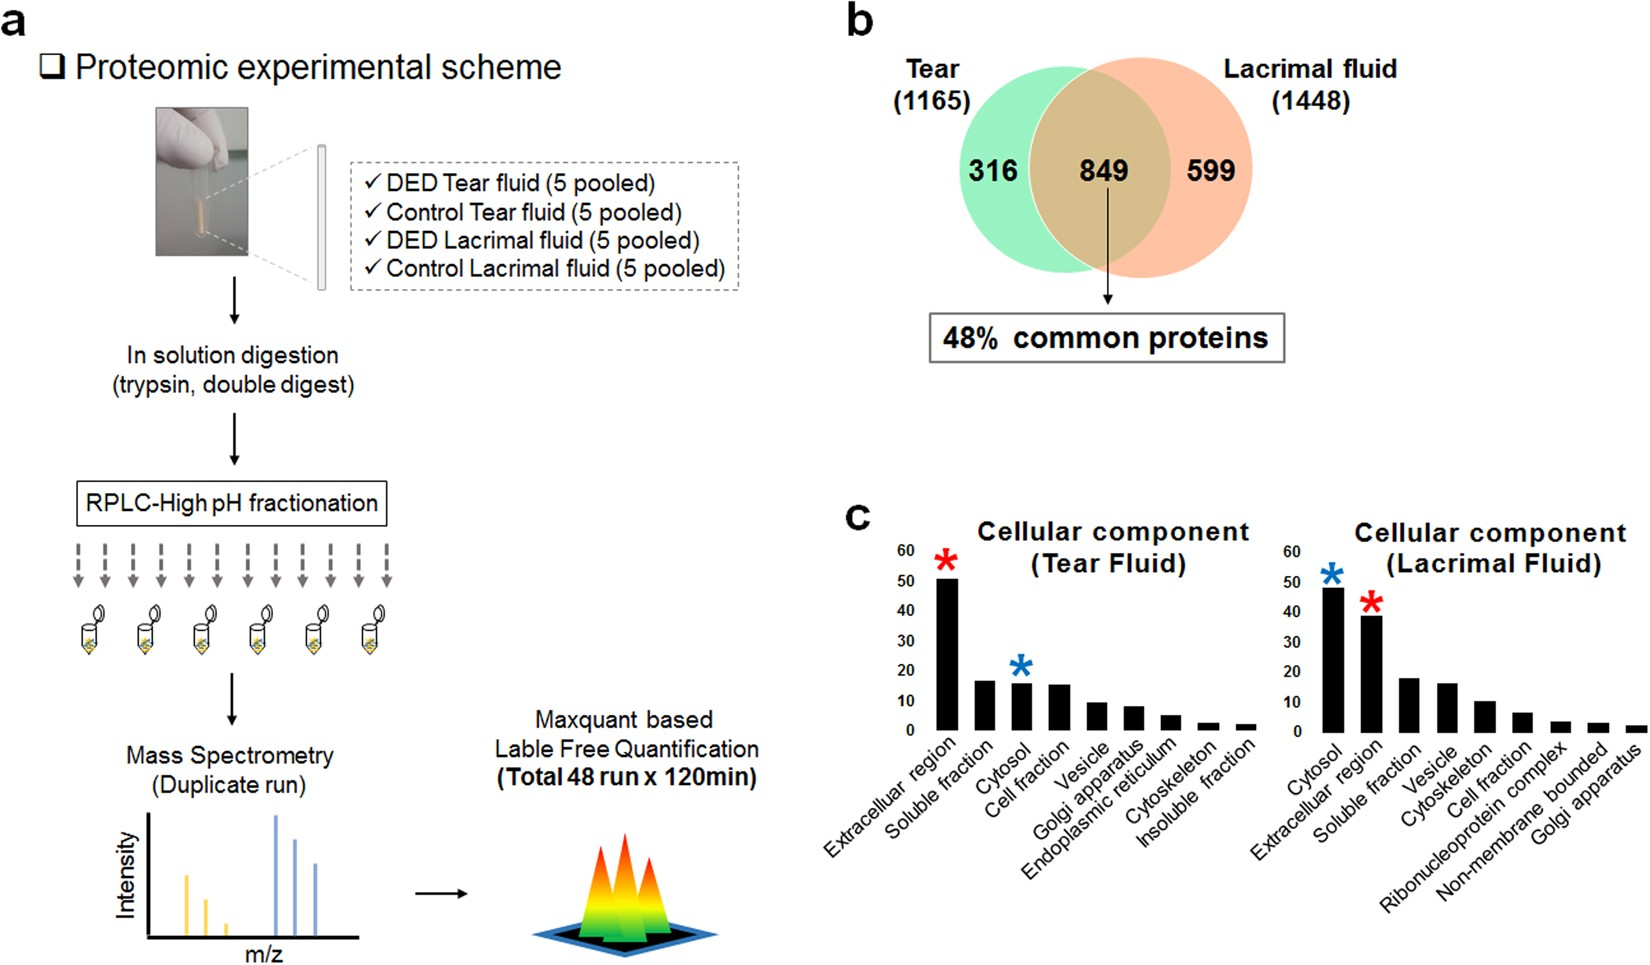 Proteomic Analysis Of Human Lacrimal And Tear Fluid In Dry Eye